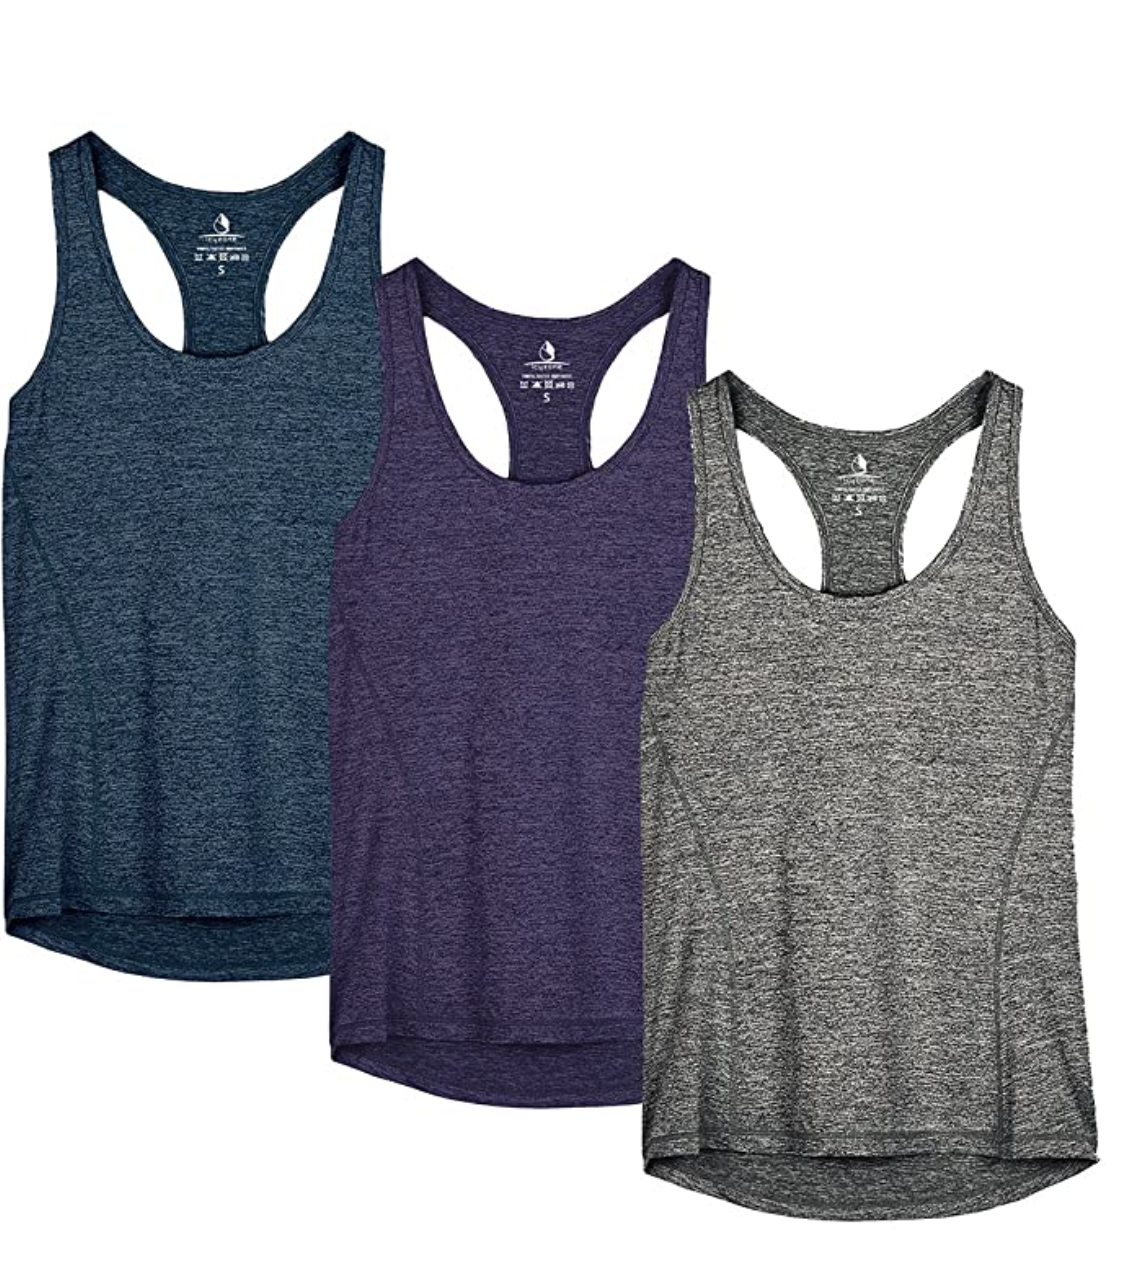 gifts-for-mother-in-law-workout-tanks